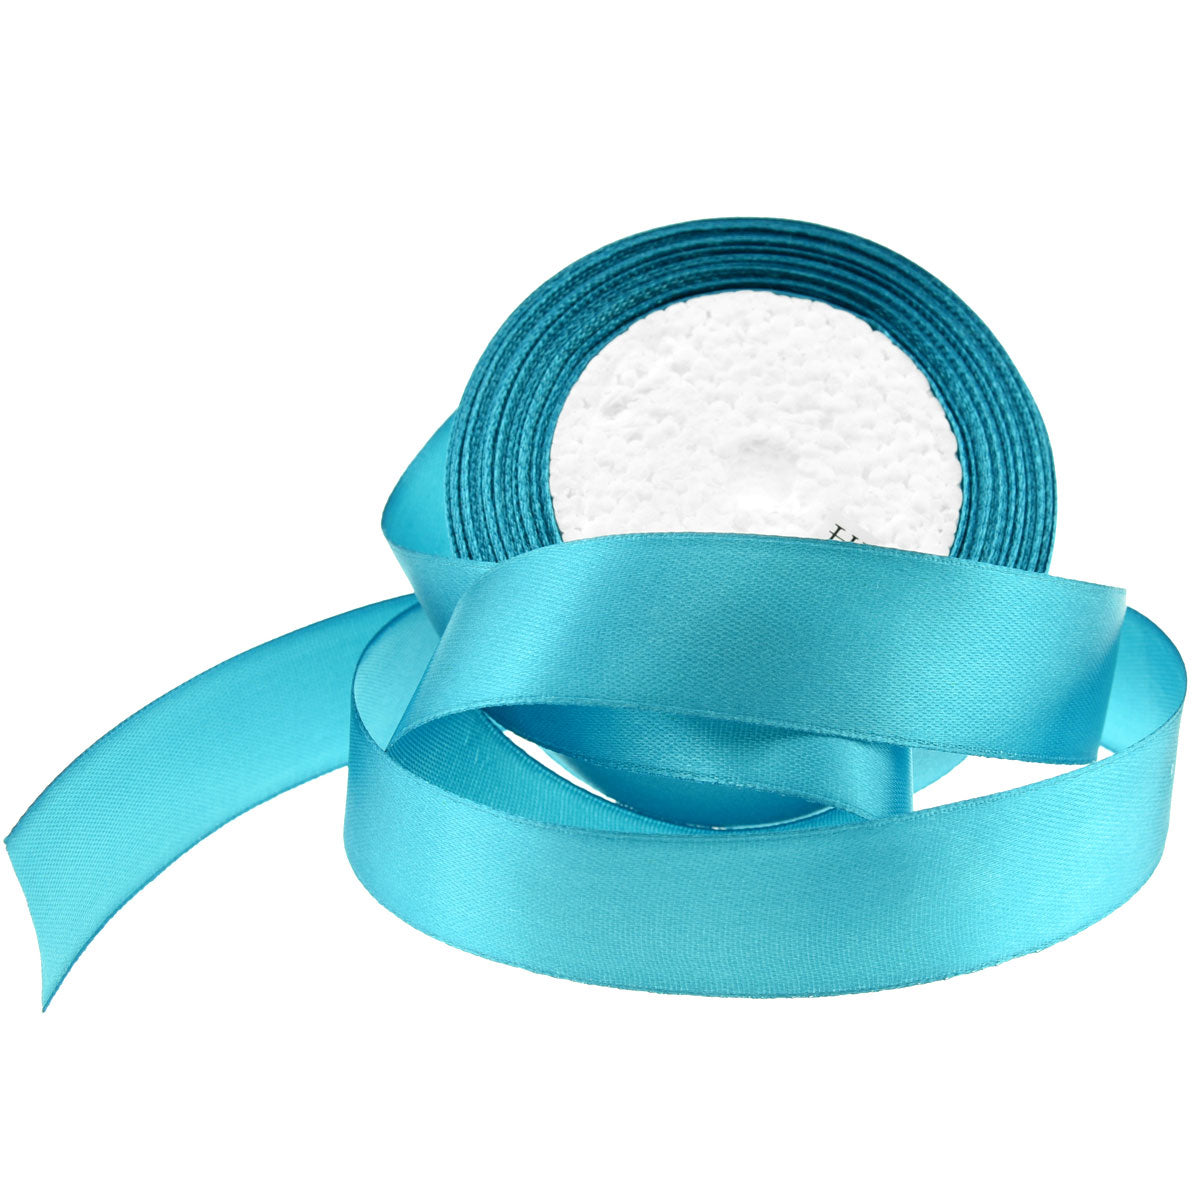 25mm Turquoise Single Sided Satin Ribbon